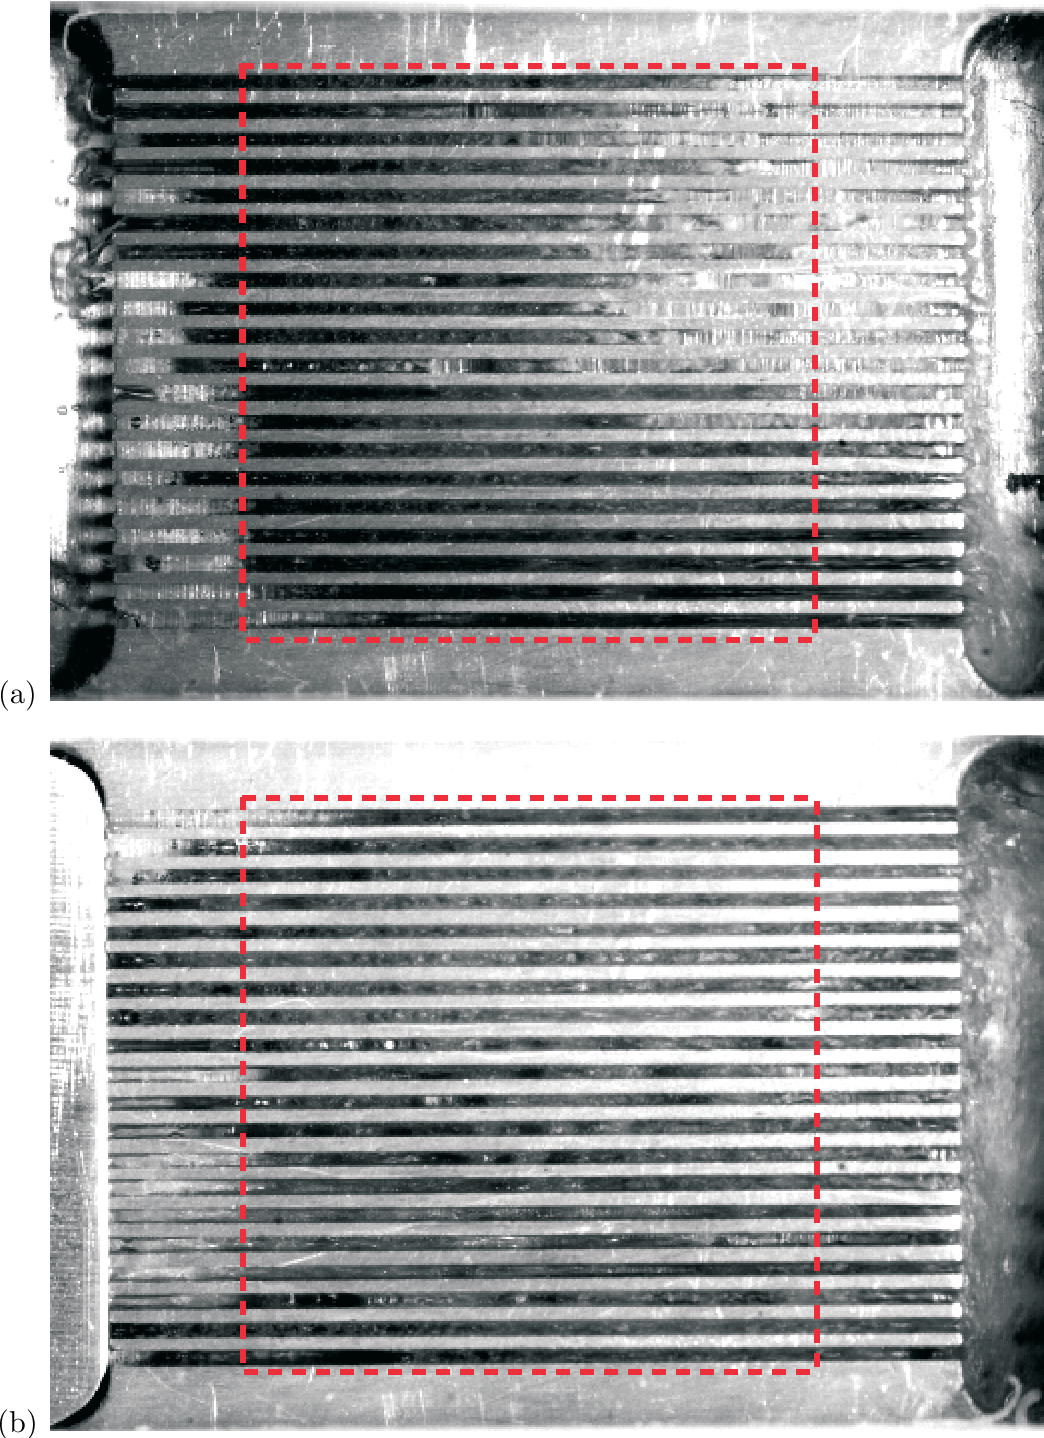 Figure 2.1: Visualization of the 4'052µm test section at a high mass velocity: (a) without, and (b) with the orifice insert. Flow direction is from left to right. The heating area is denoted by a red dashed line. Bright areas in the channels represent a single-phase liquid (near inlet) or annular flow (near outlet), whereas darker areas represent two-phase bubble mixture. Figure extracted from Park et al. (2009).